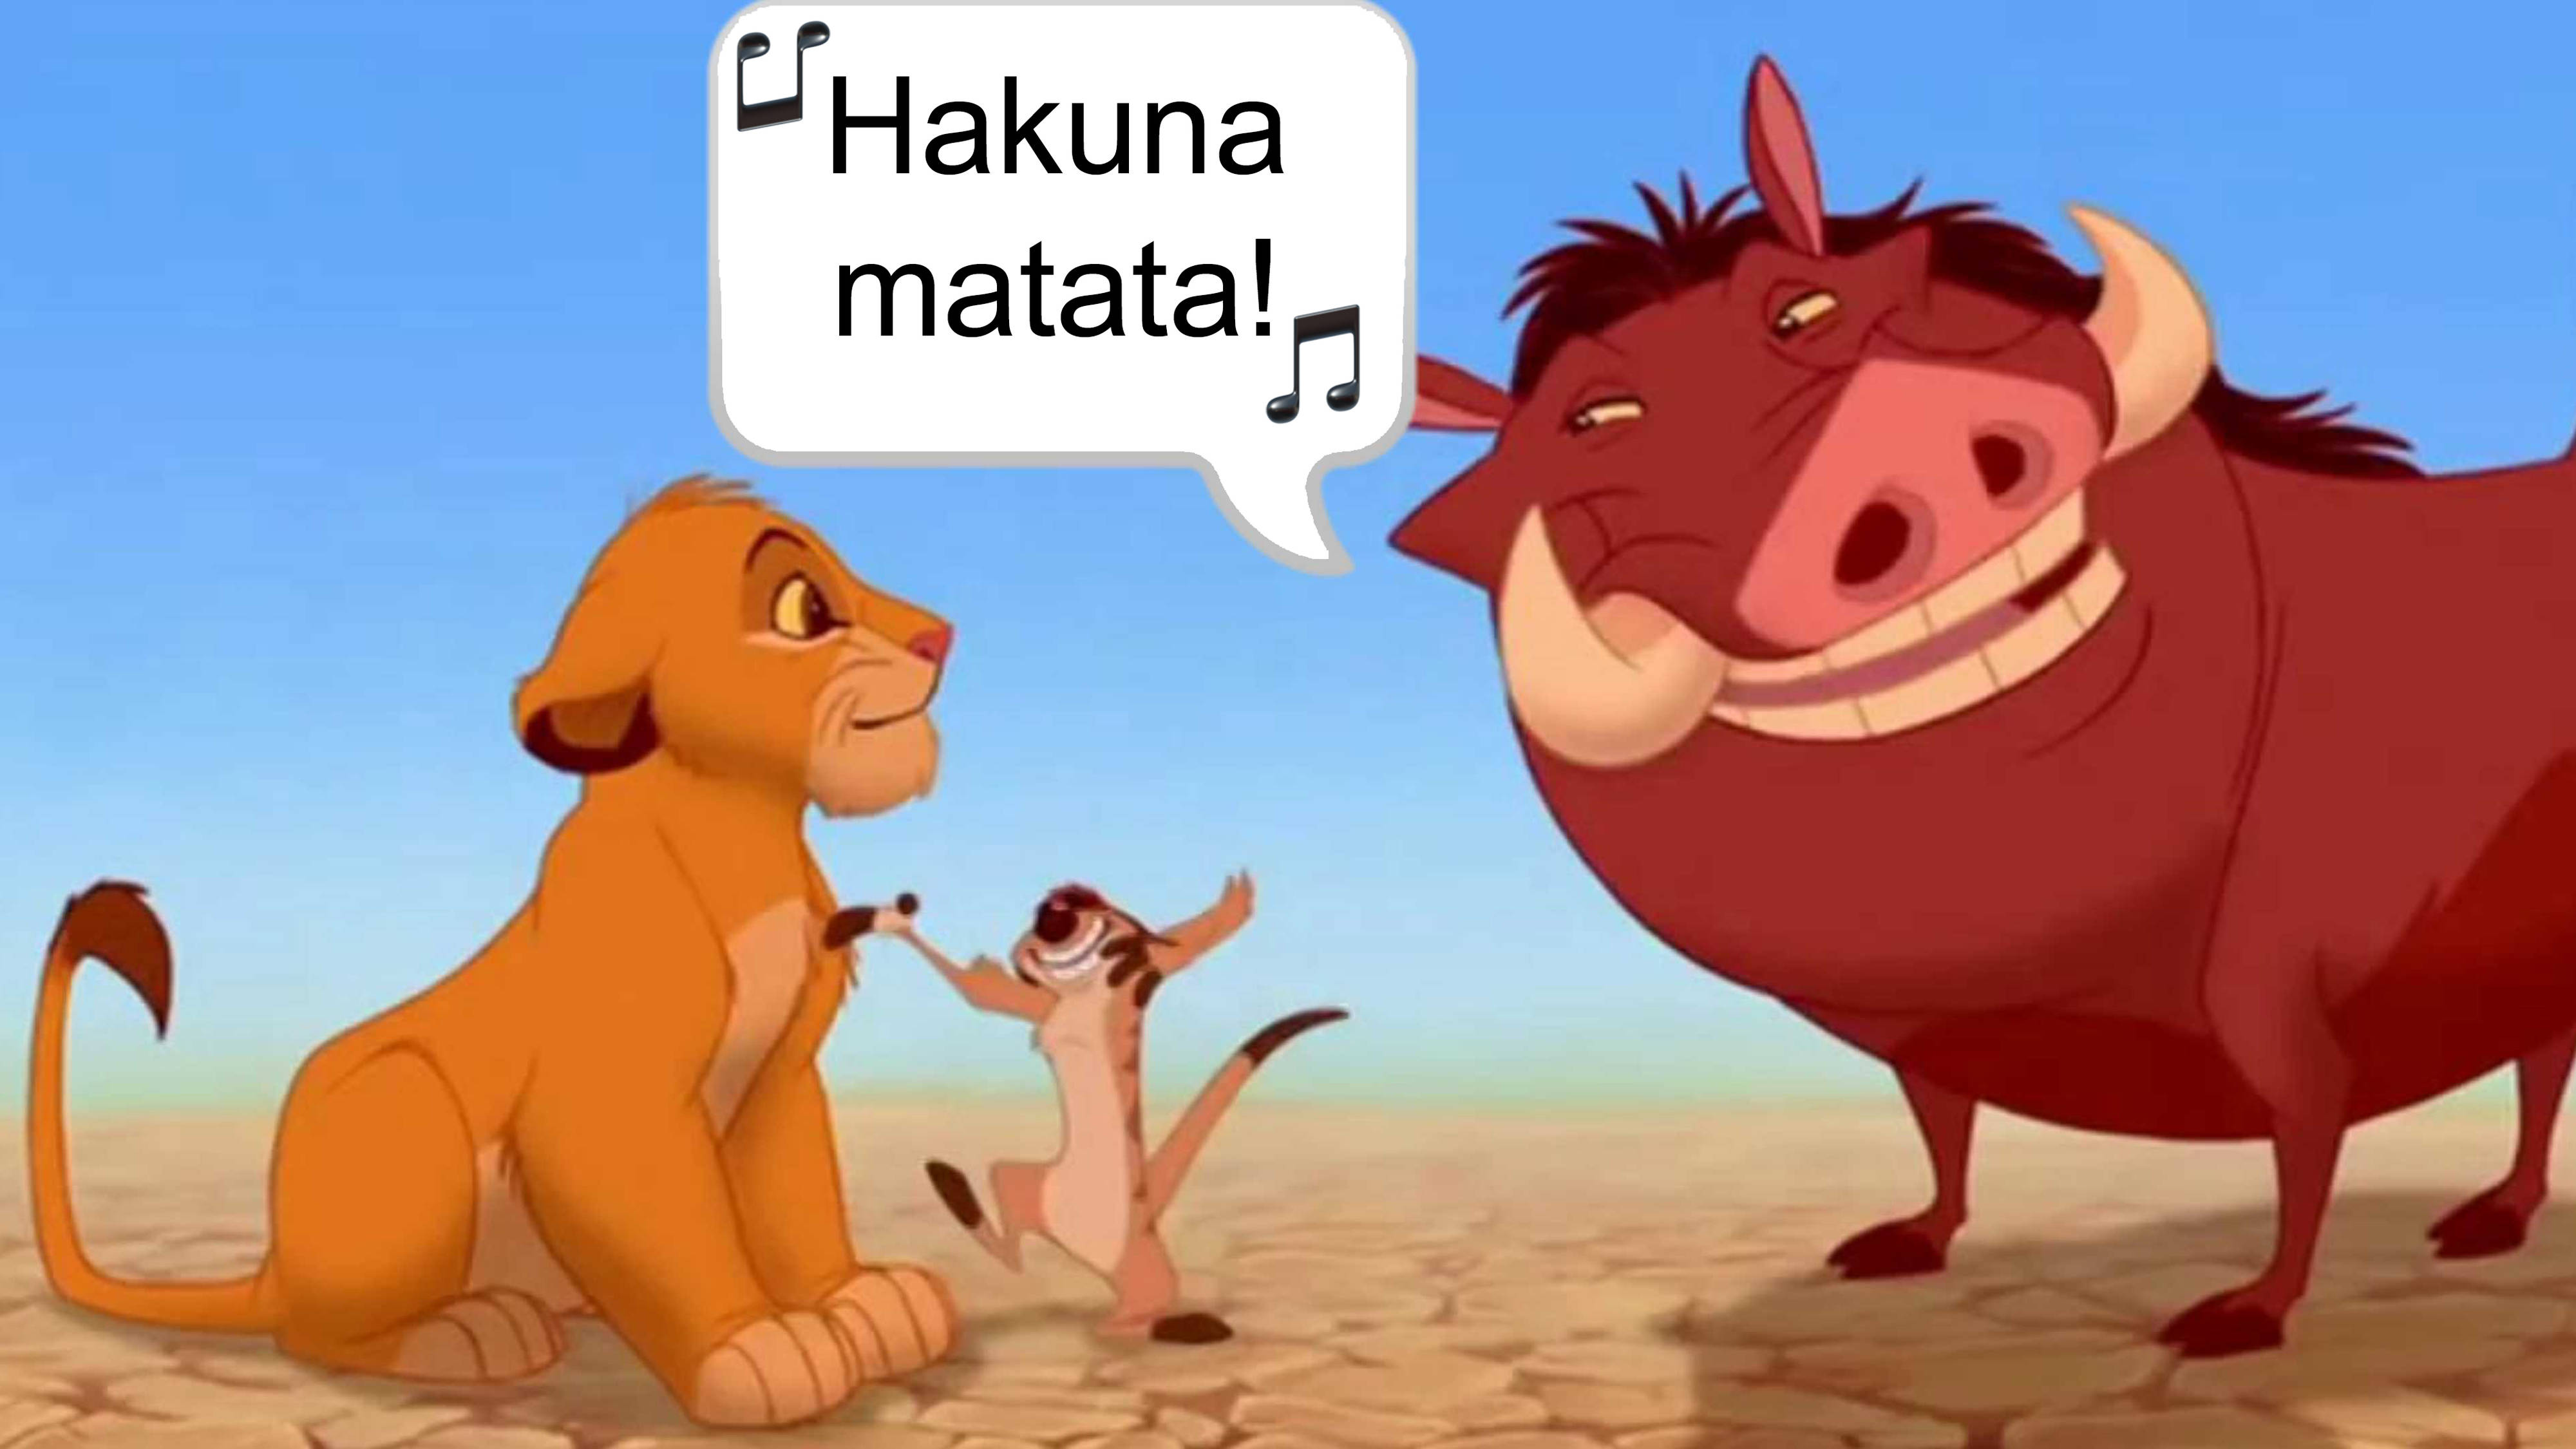 The Lion King: What does the phrase 'Hakuna matata' actually mean?